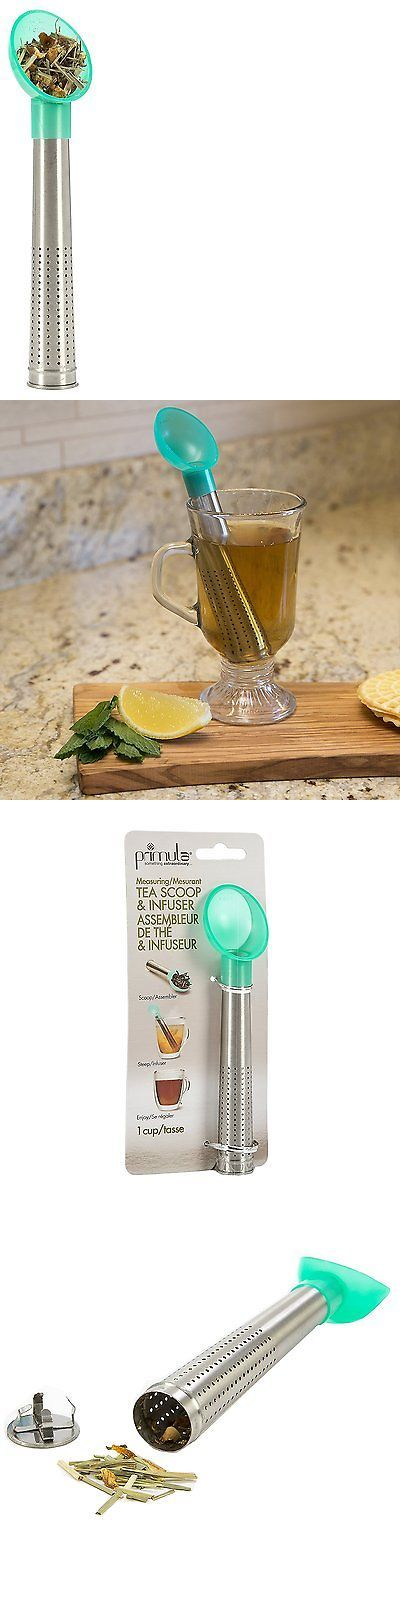 Tea Infusers 177754: Primula 2-In-1 Tea Scoop And Infuser - Innovative Design - Portable - For Use -> BUY IT NOW ONLY: $40.93 on eBay!